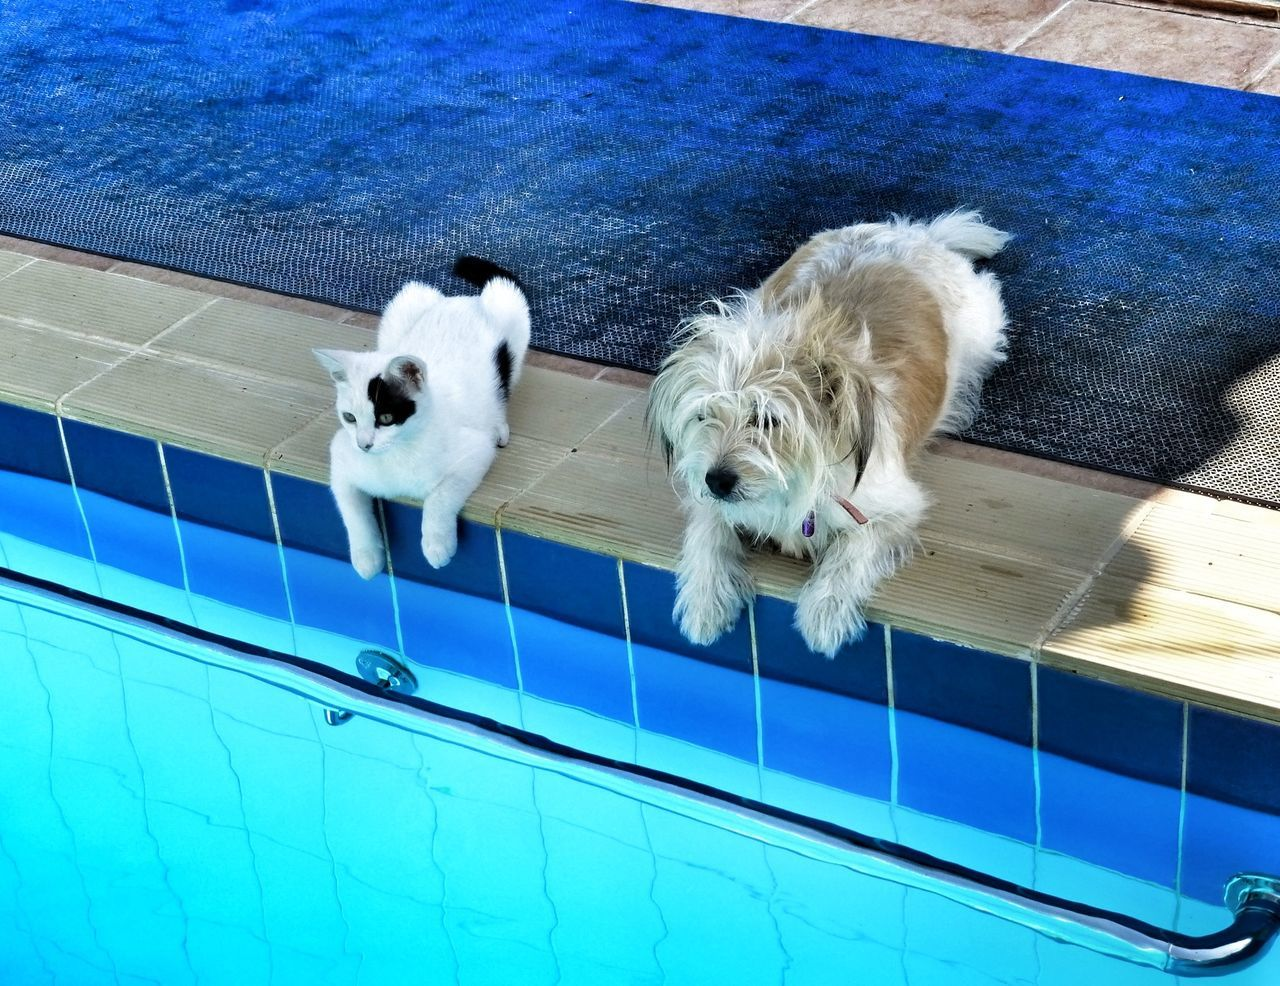 Cats And Dogs Can We Swim? Rhodes Rhodes Greece Cats Black And White Cat White Dog Blackandwhitecat We Are A Team ! Friends Friendship Hanging Out Hanging Out With Friends Blue Wave